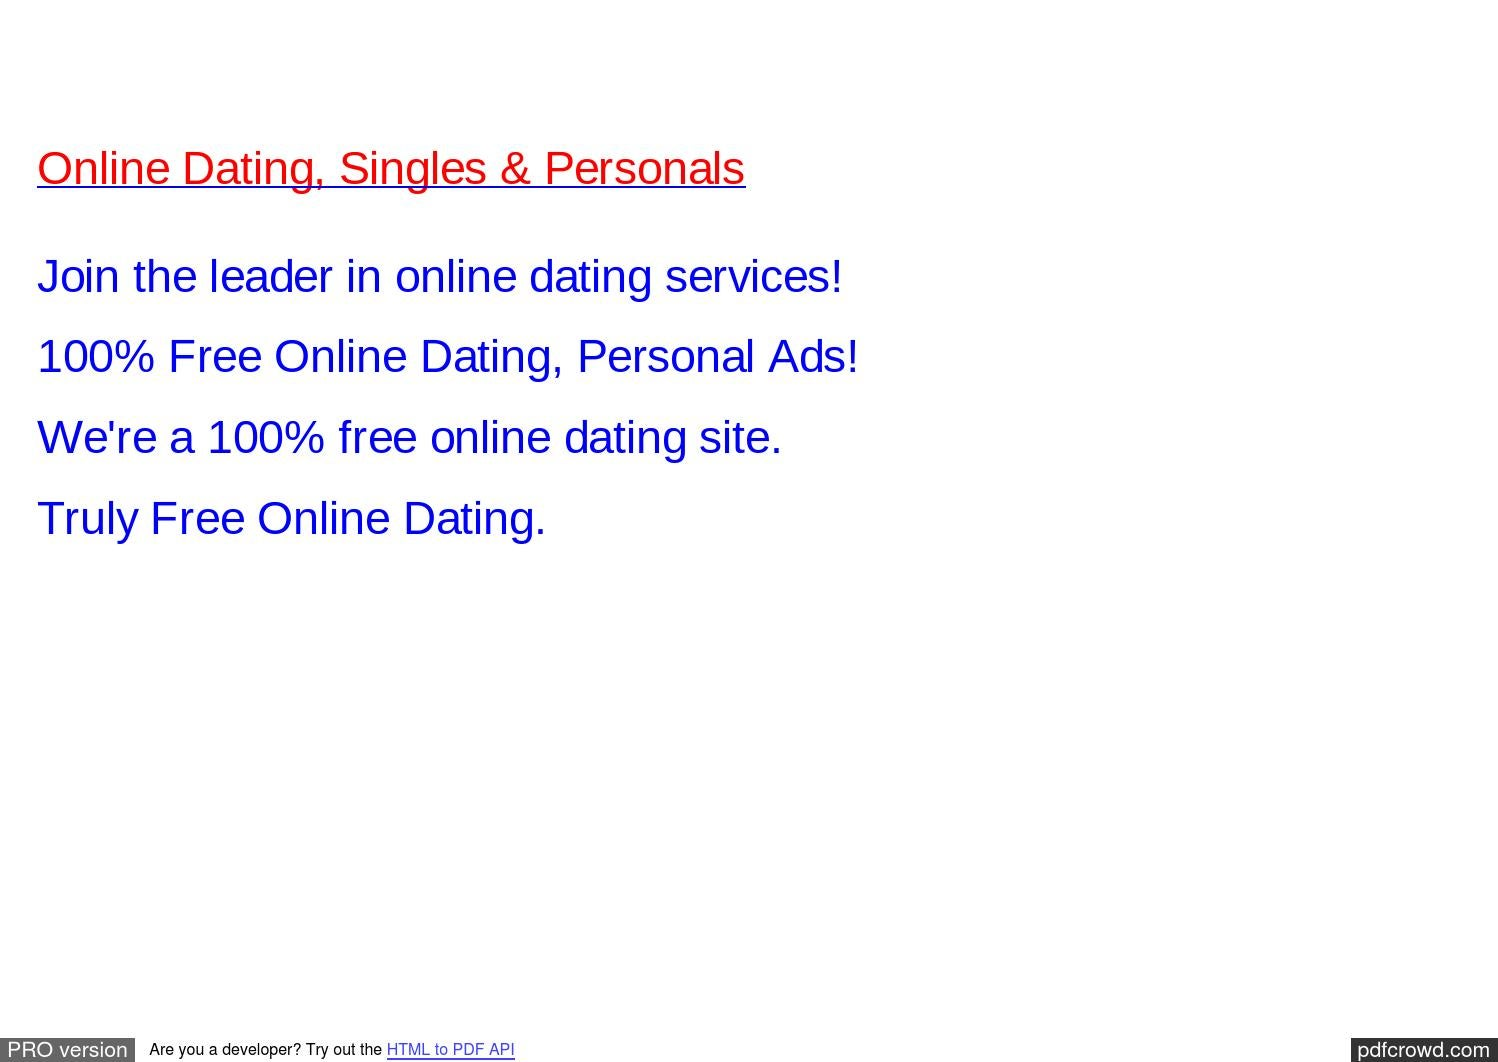 New online dating sites for free in Brisbane